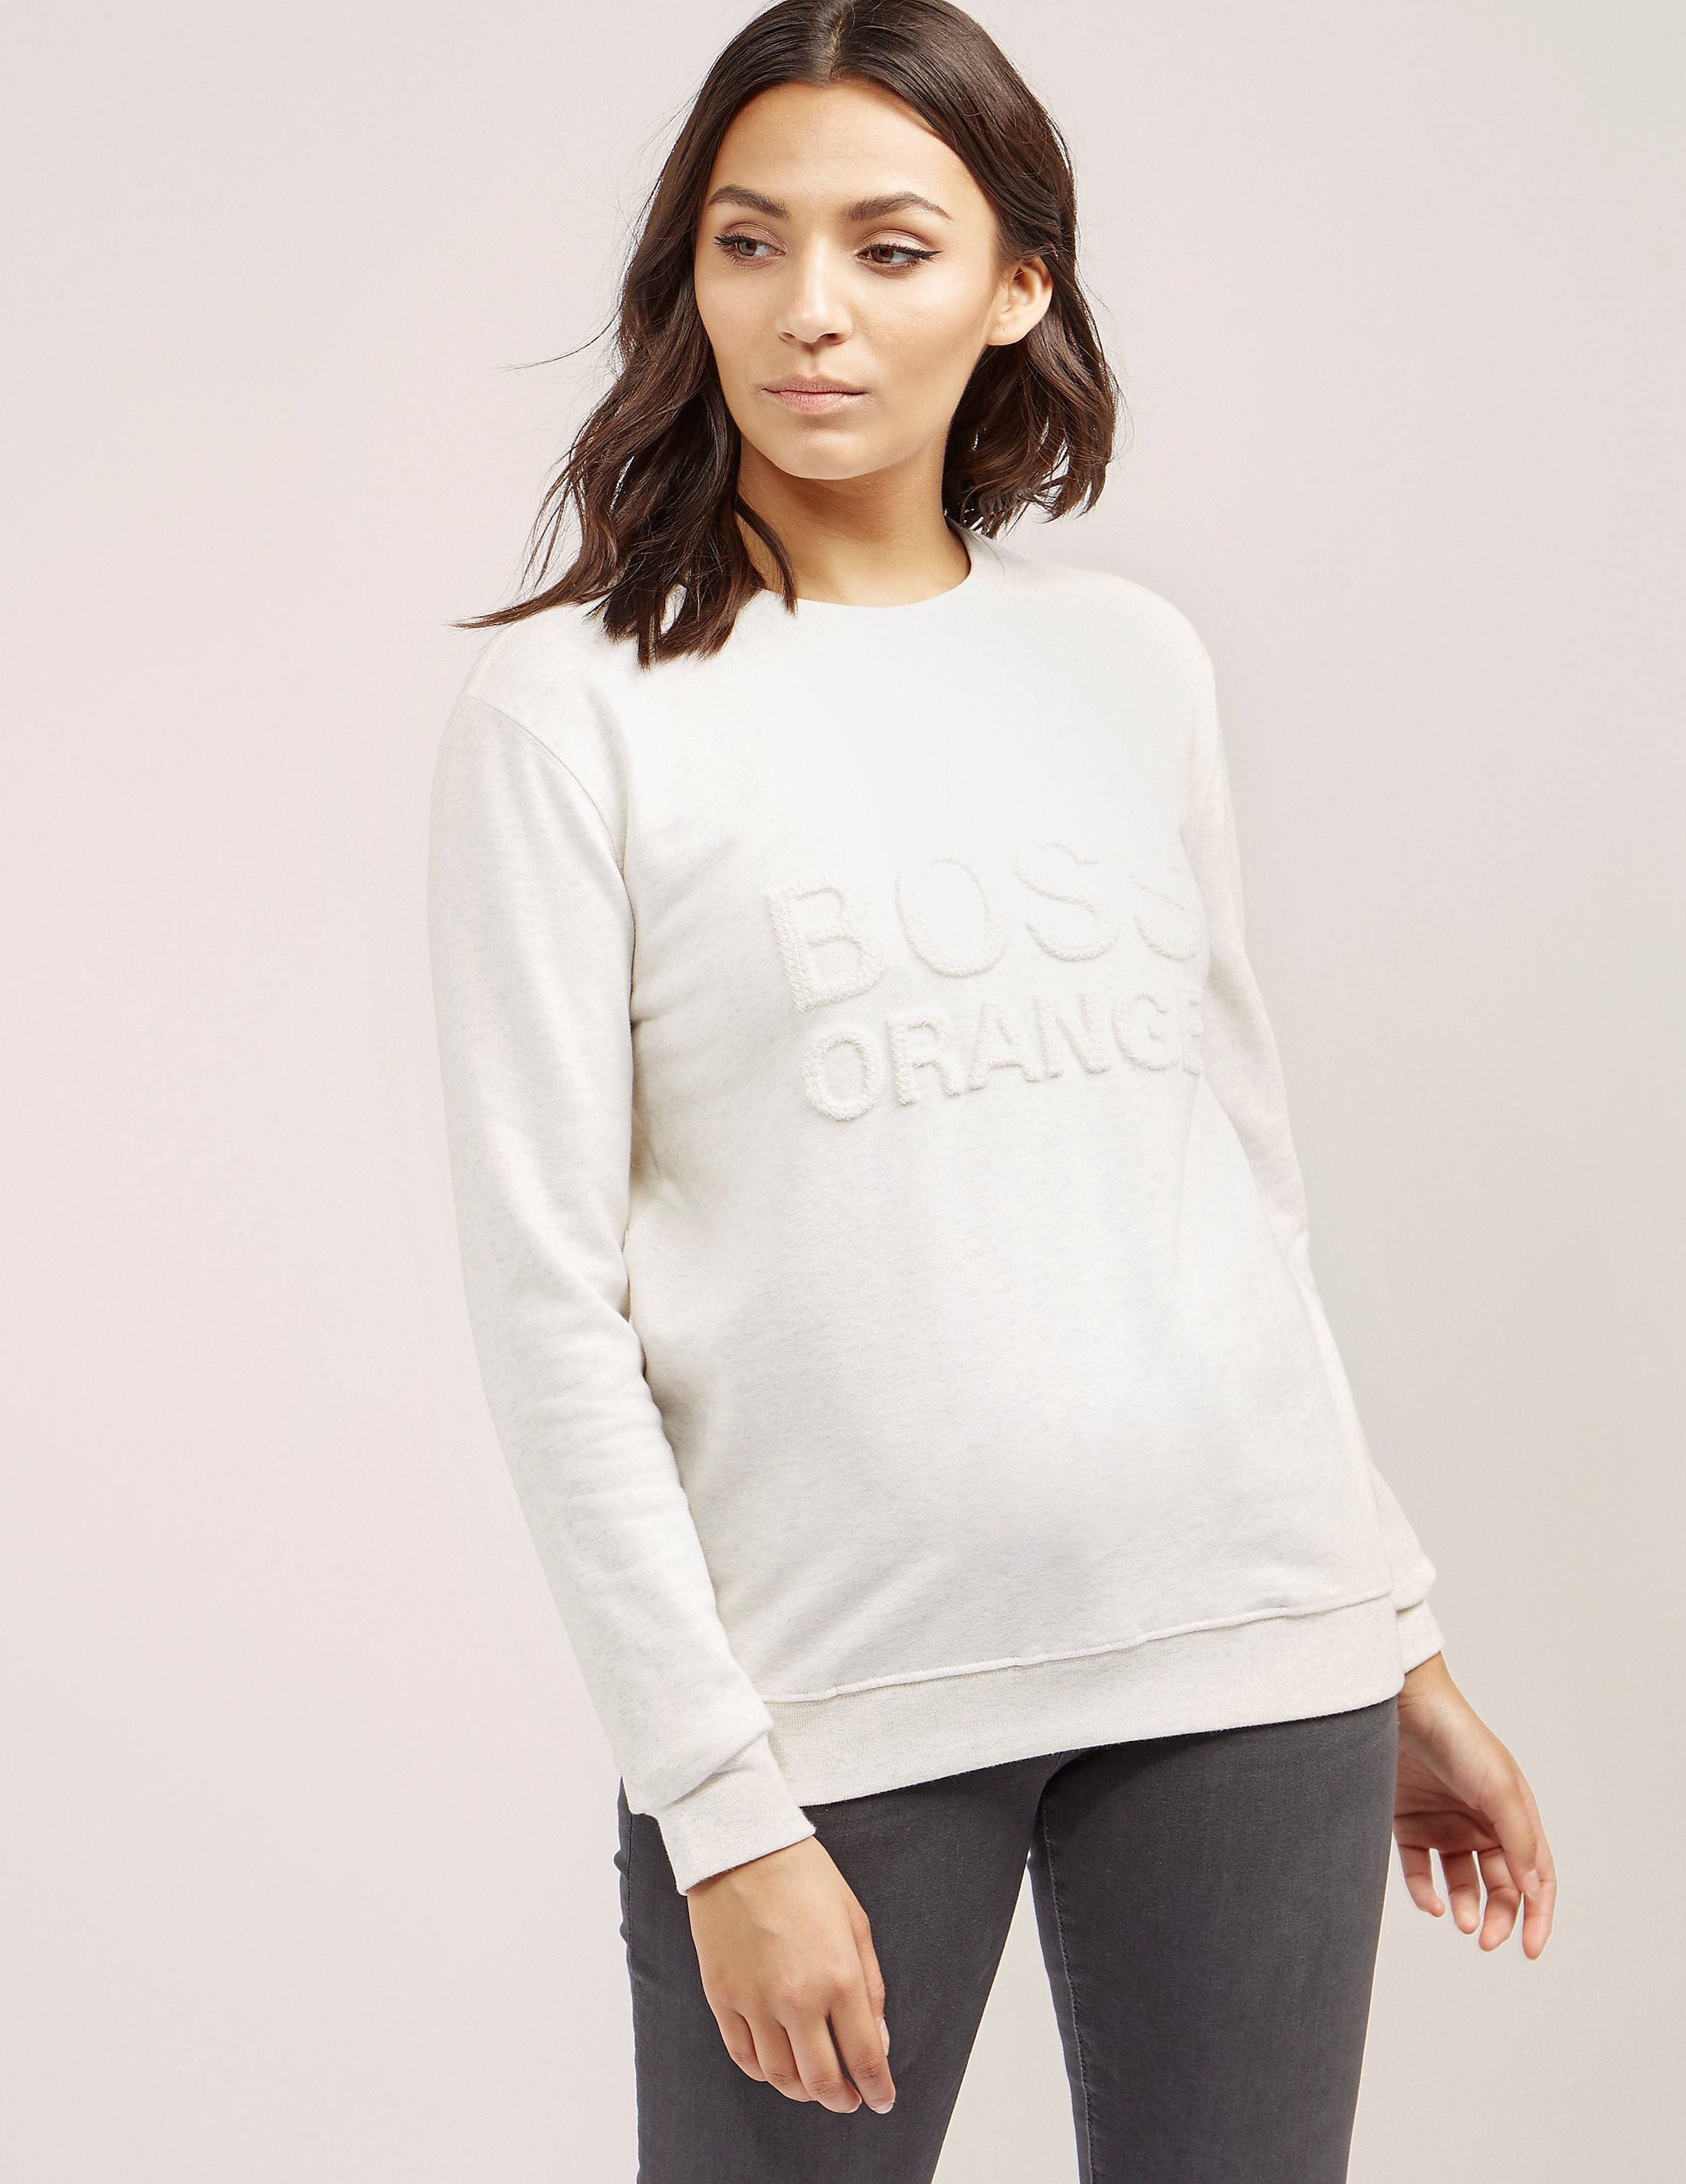 BOSS Orange Embroided Sweatshirt